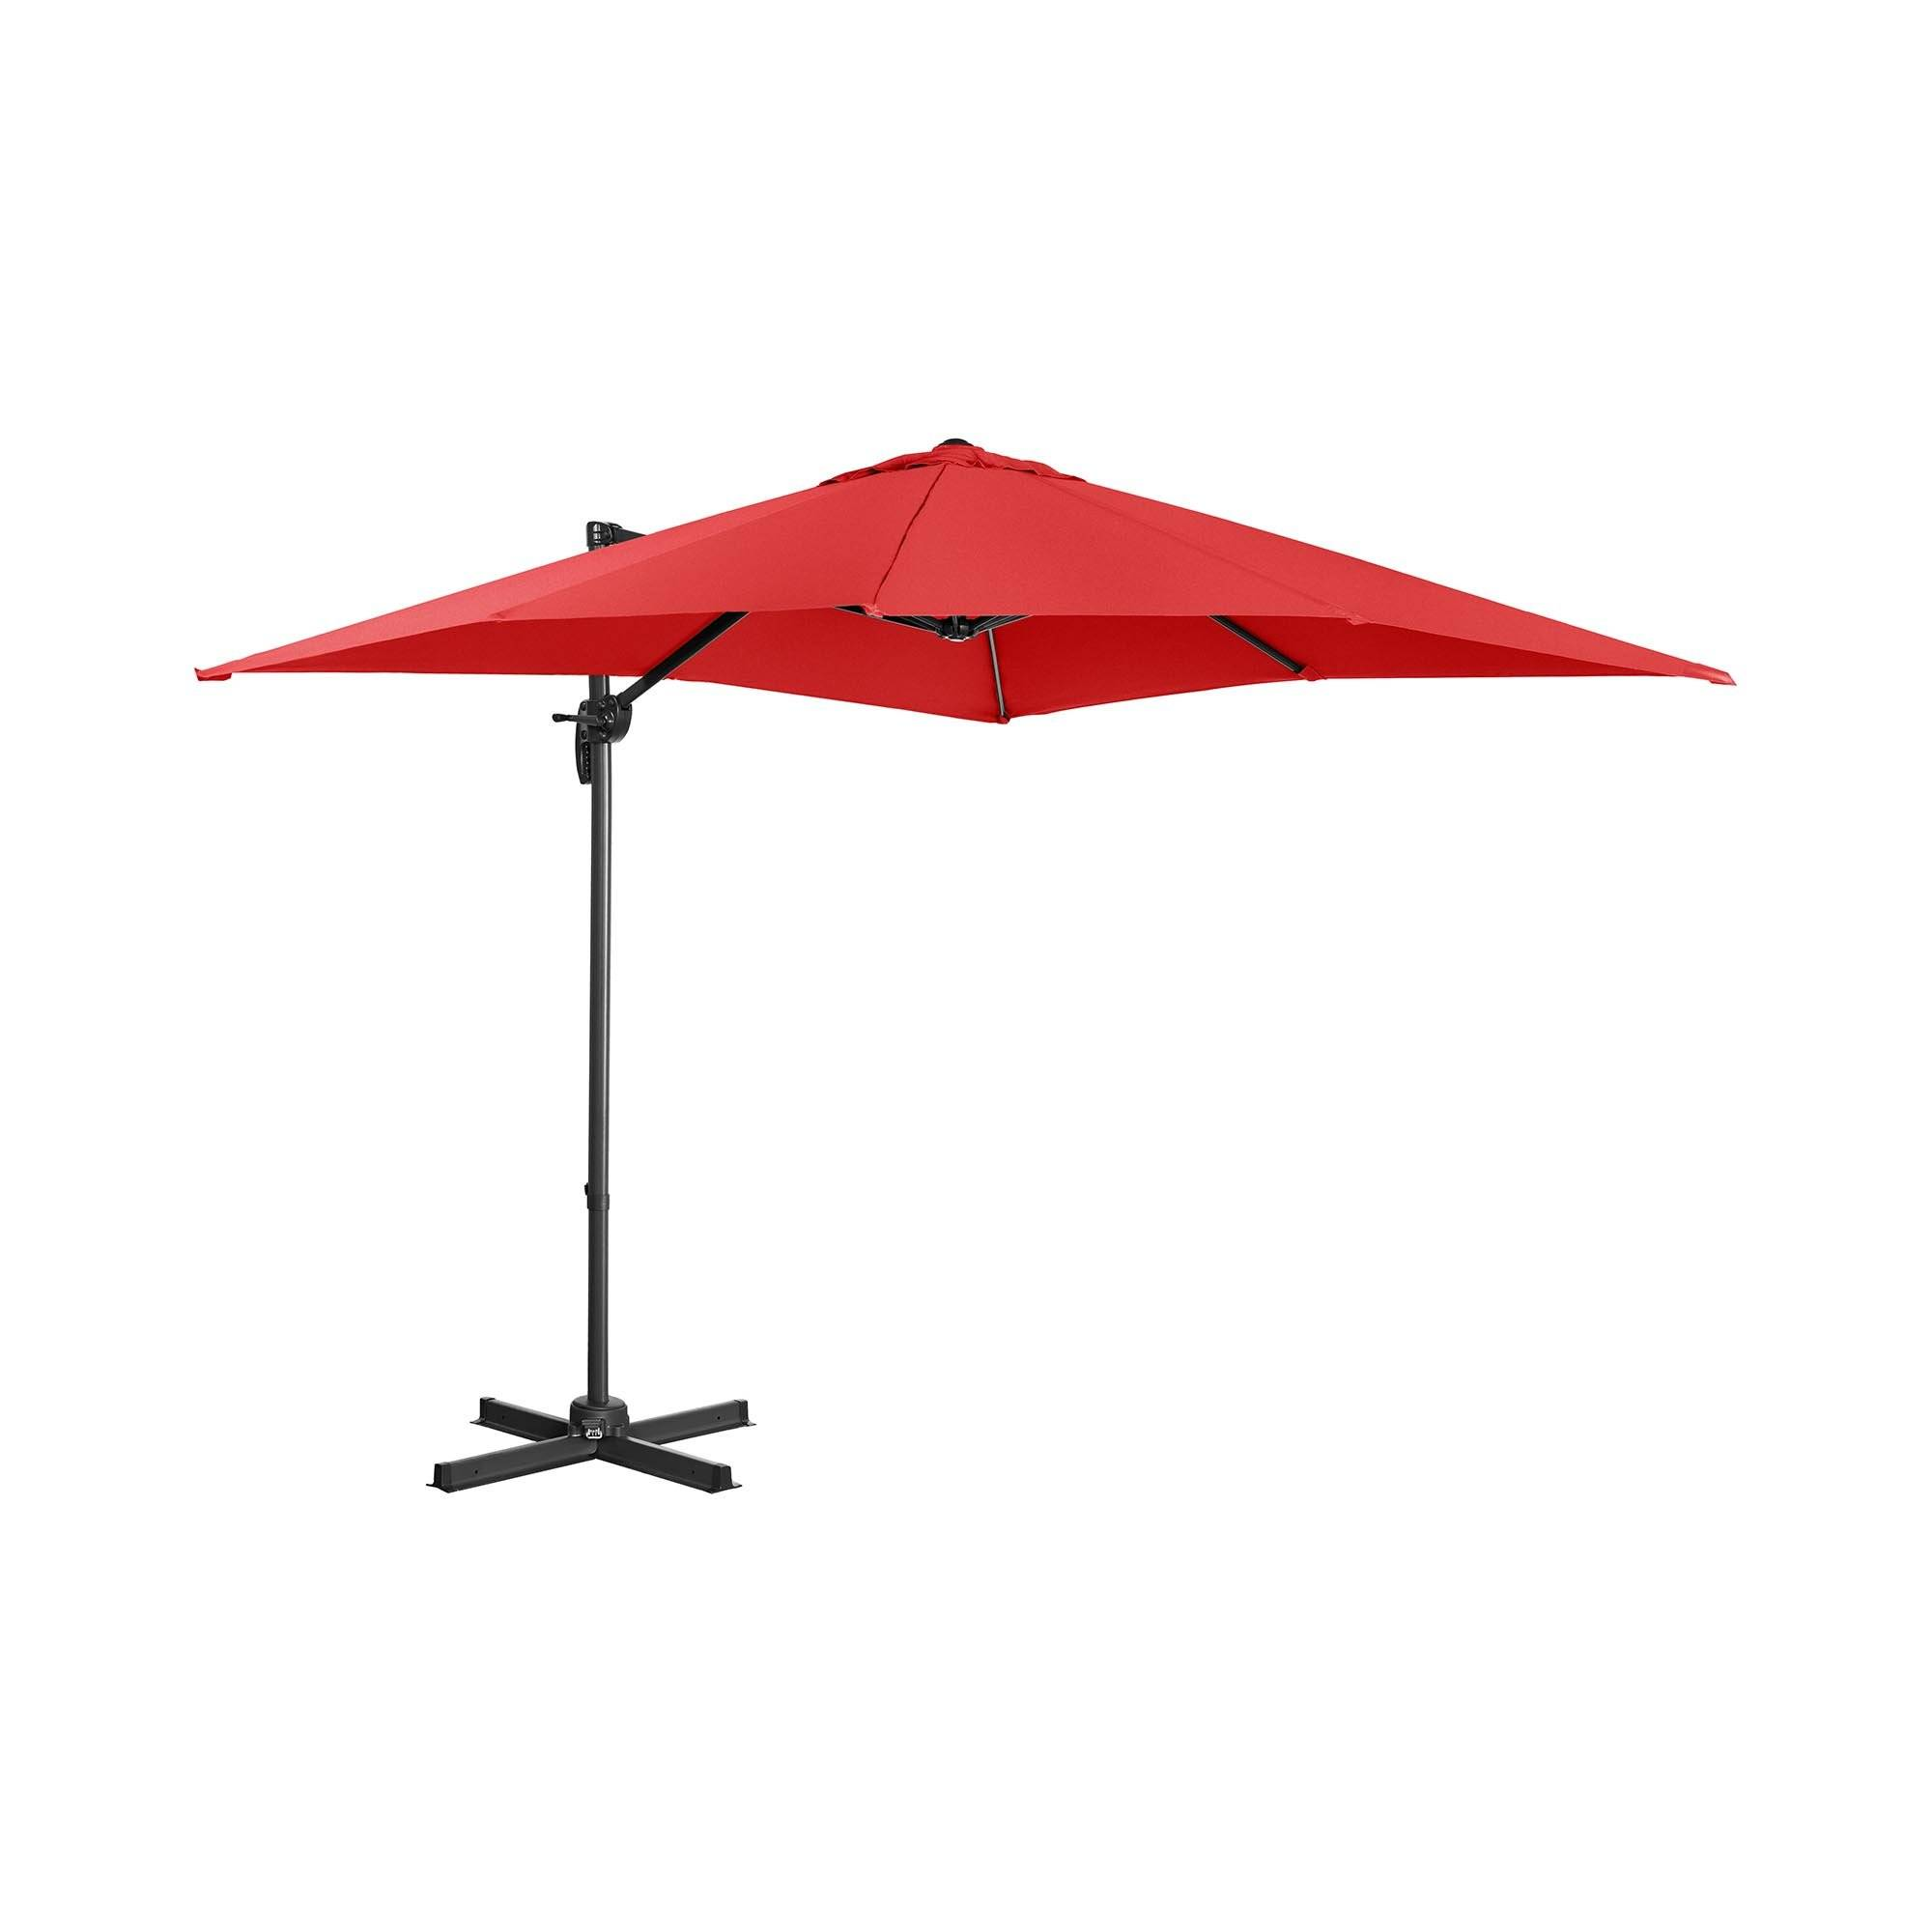 Uniprodo Hanging Parasol - red - square - 250 x 250 cm - rotatable